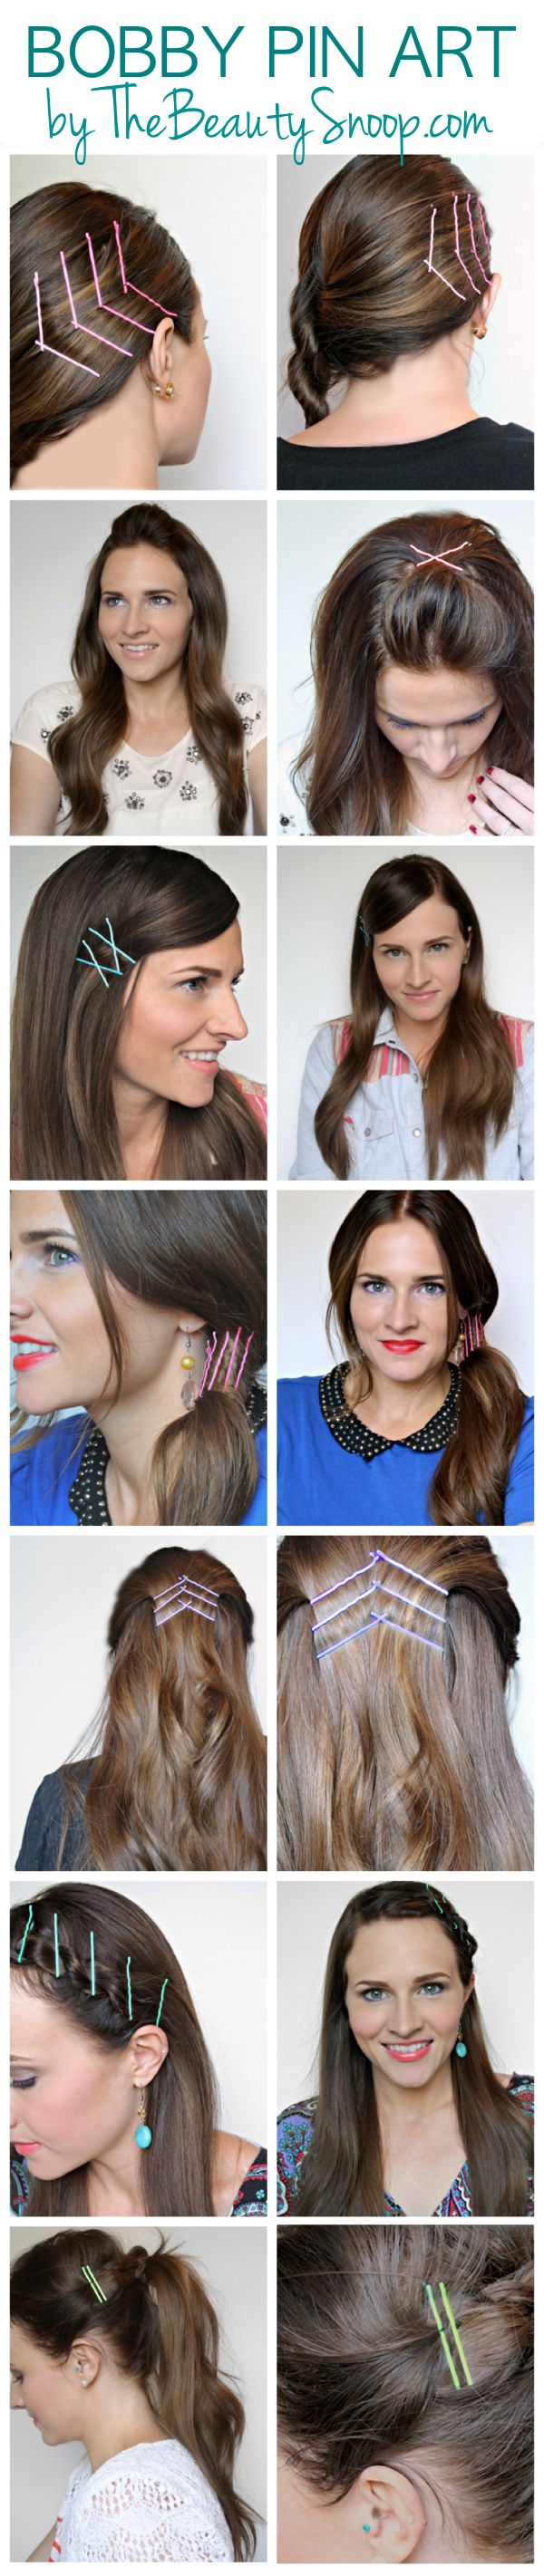 Bobby Pin Art- unique and super cute ways to wear your hair style, using the ombre pins from Sephora. Must try these! #hairideas